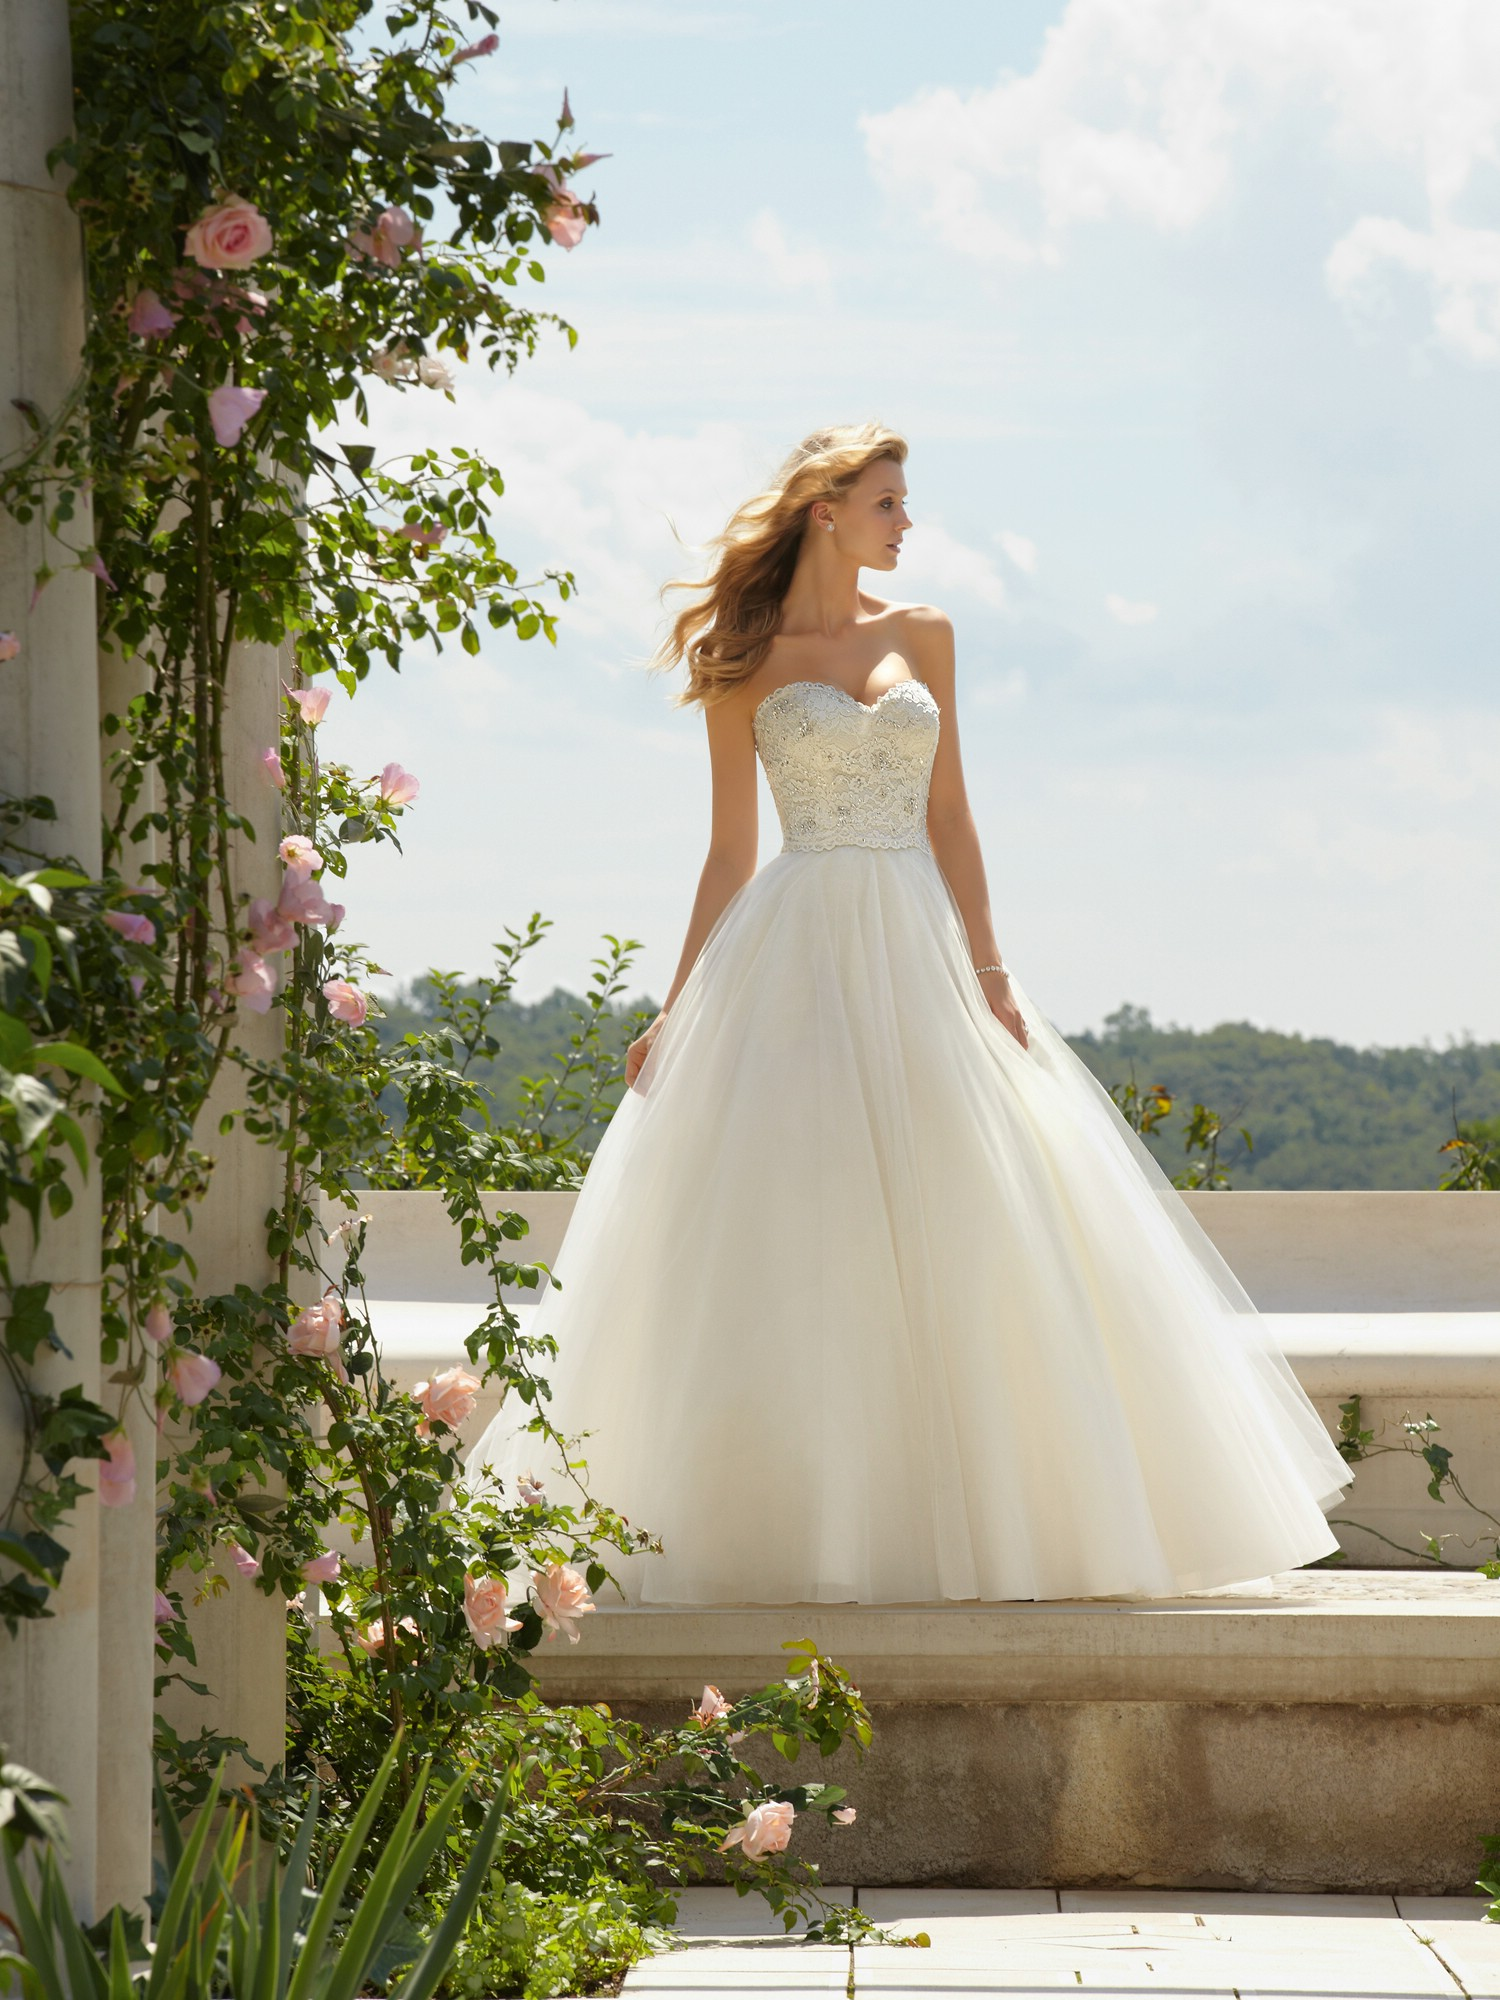 Affordable Yet Beautiful Wedding Dresses With You In Mind, Beginning With  Ball Gown Wedding Dresses For Less Than £500